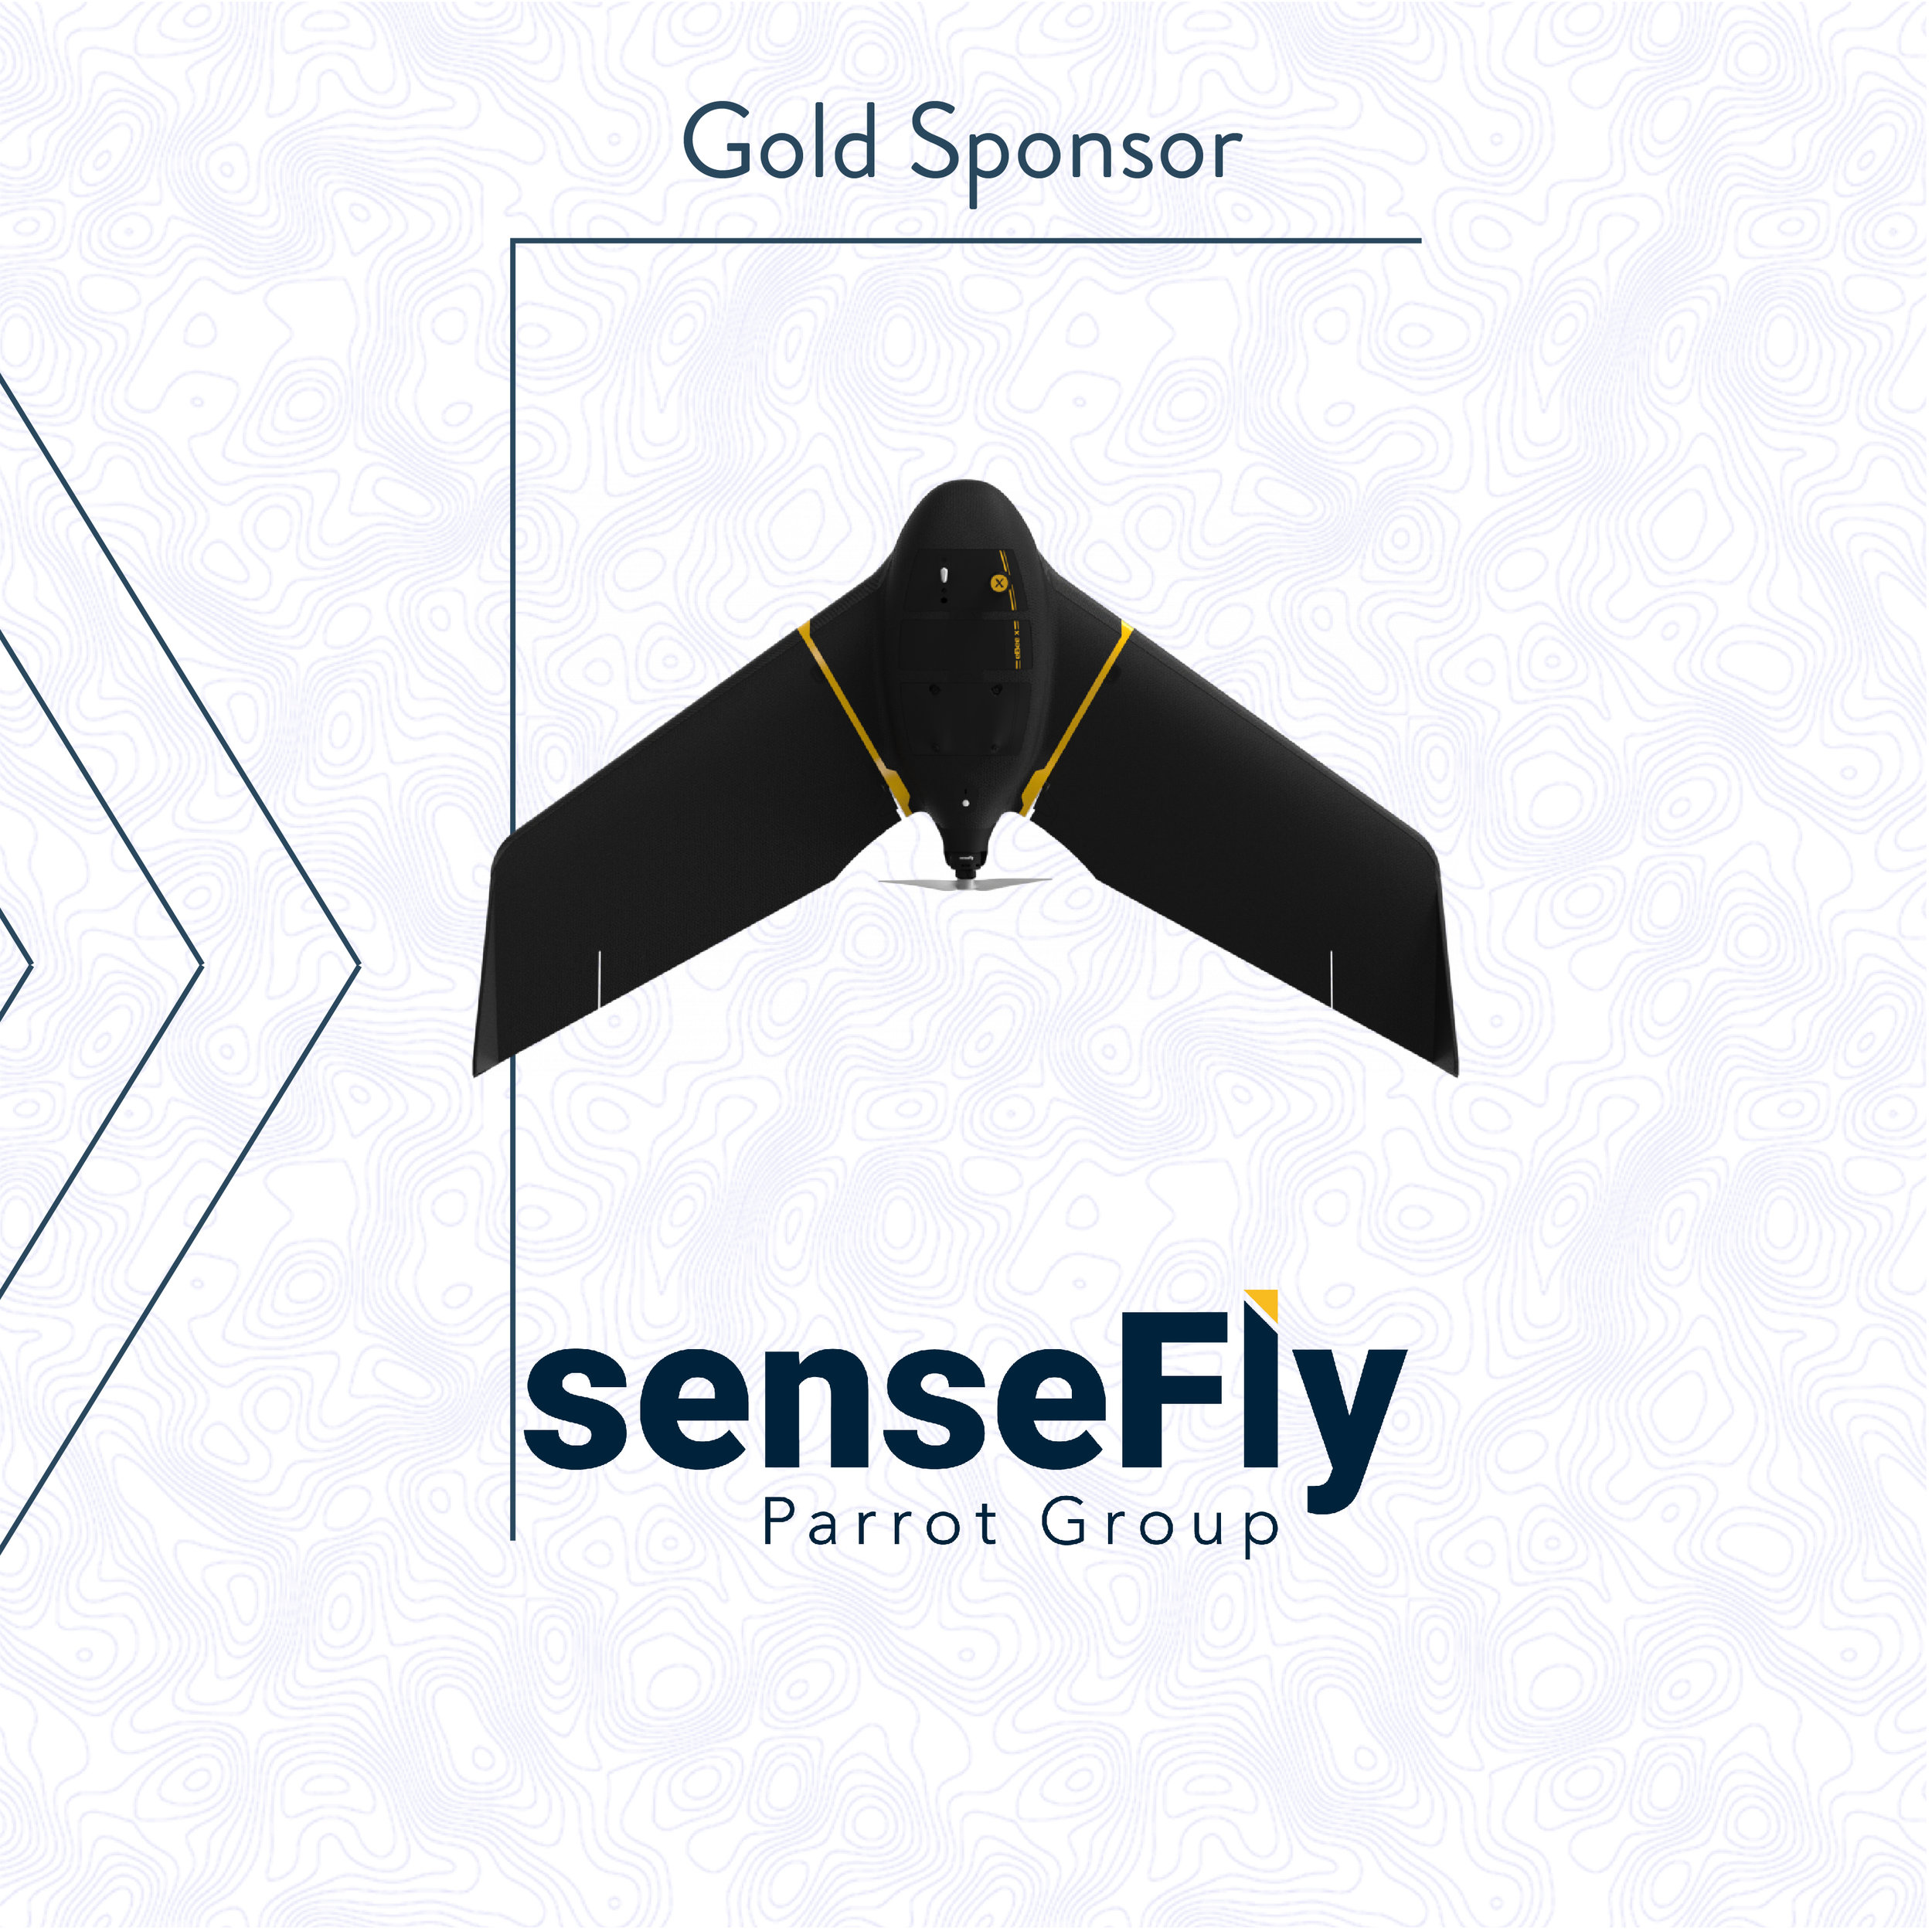 - At senseFly we believe in using technology to make work safer and more efficient.Our proven drone solutions simplify the collection and analysis of geospatial data, allowing professionals in surveying, agriculture, engineering and humanitarian aid to make better decisions, faster. senseFly was founded in 2009 and is the commercial drone subsidiary of Parrot Group.